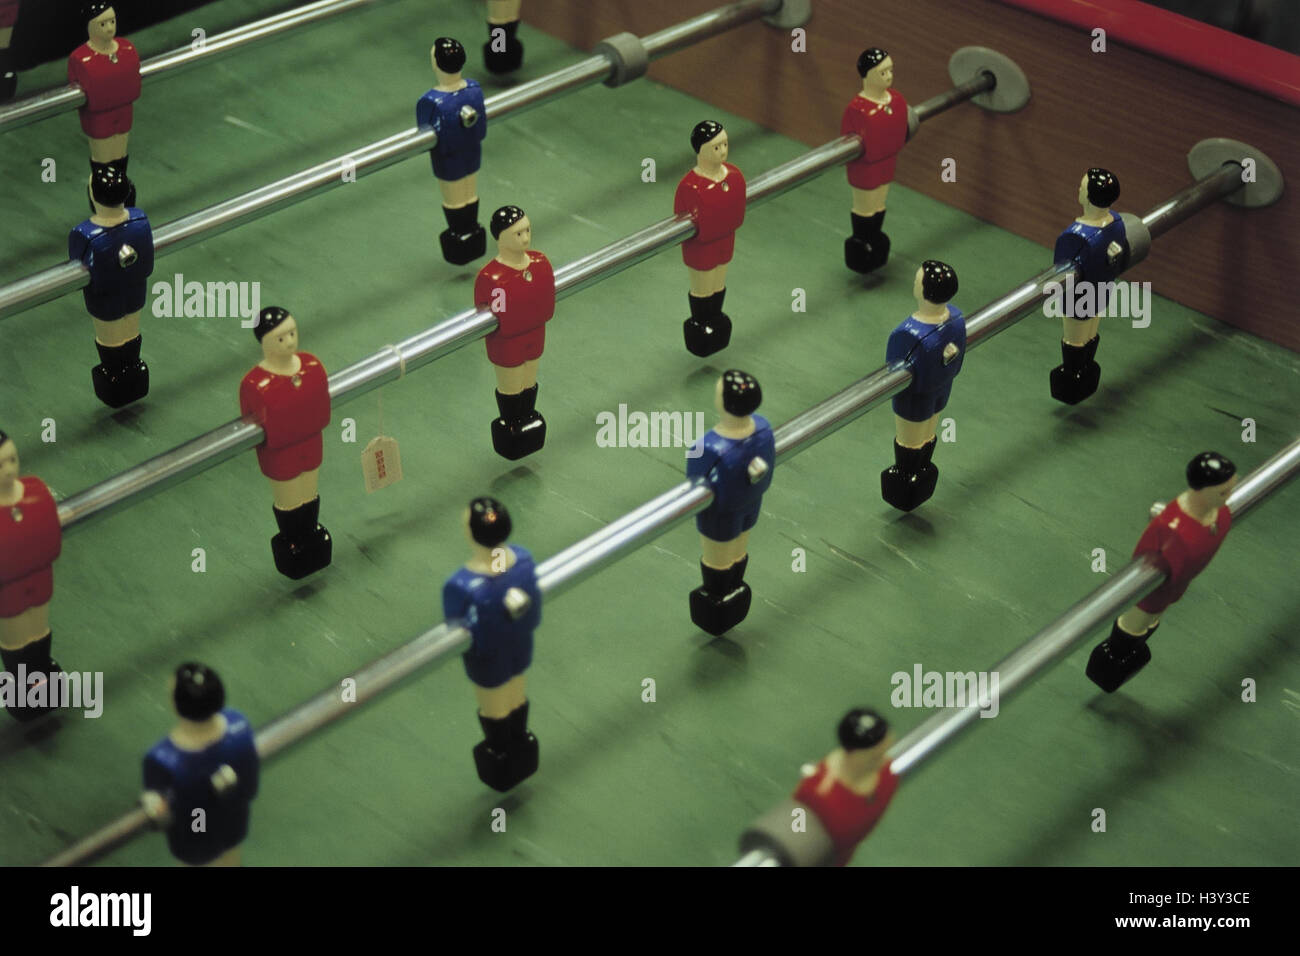 Table football, detail, product photography, Still life, table football match, football player, leisure time, entertainment, - Stock Image